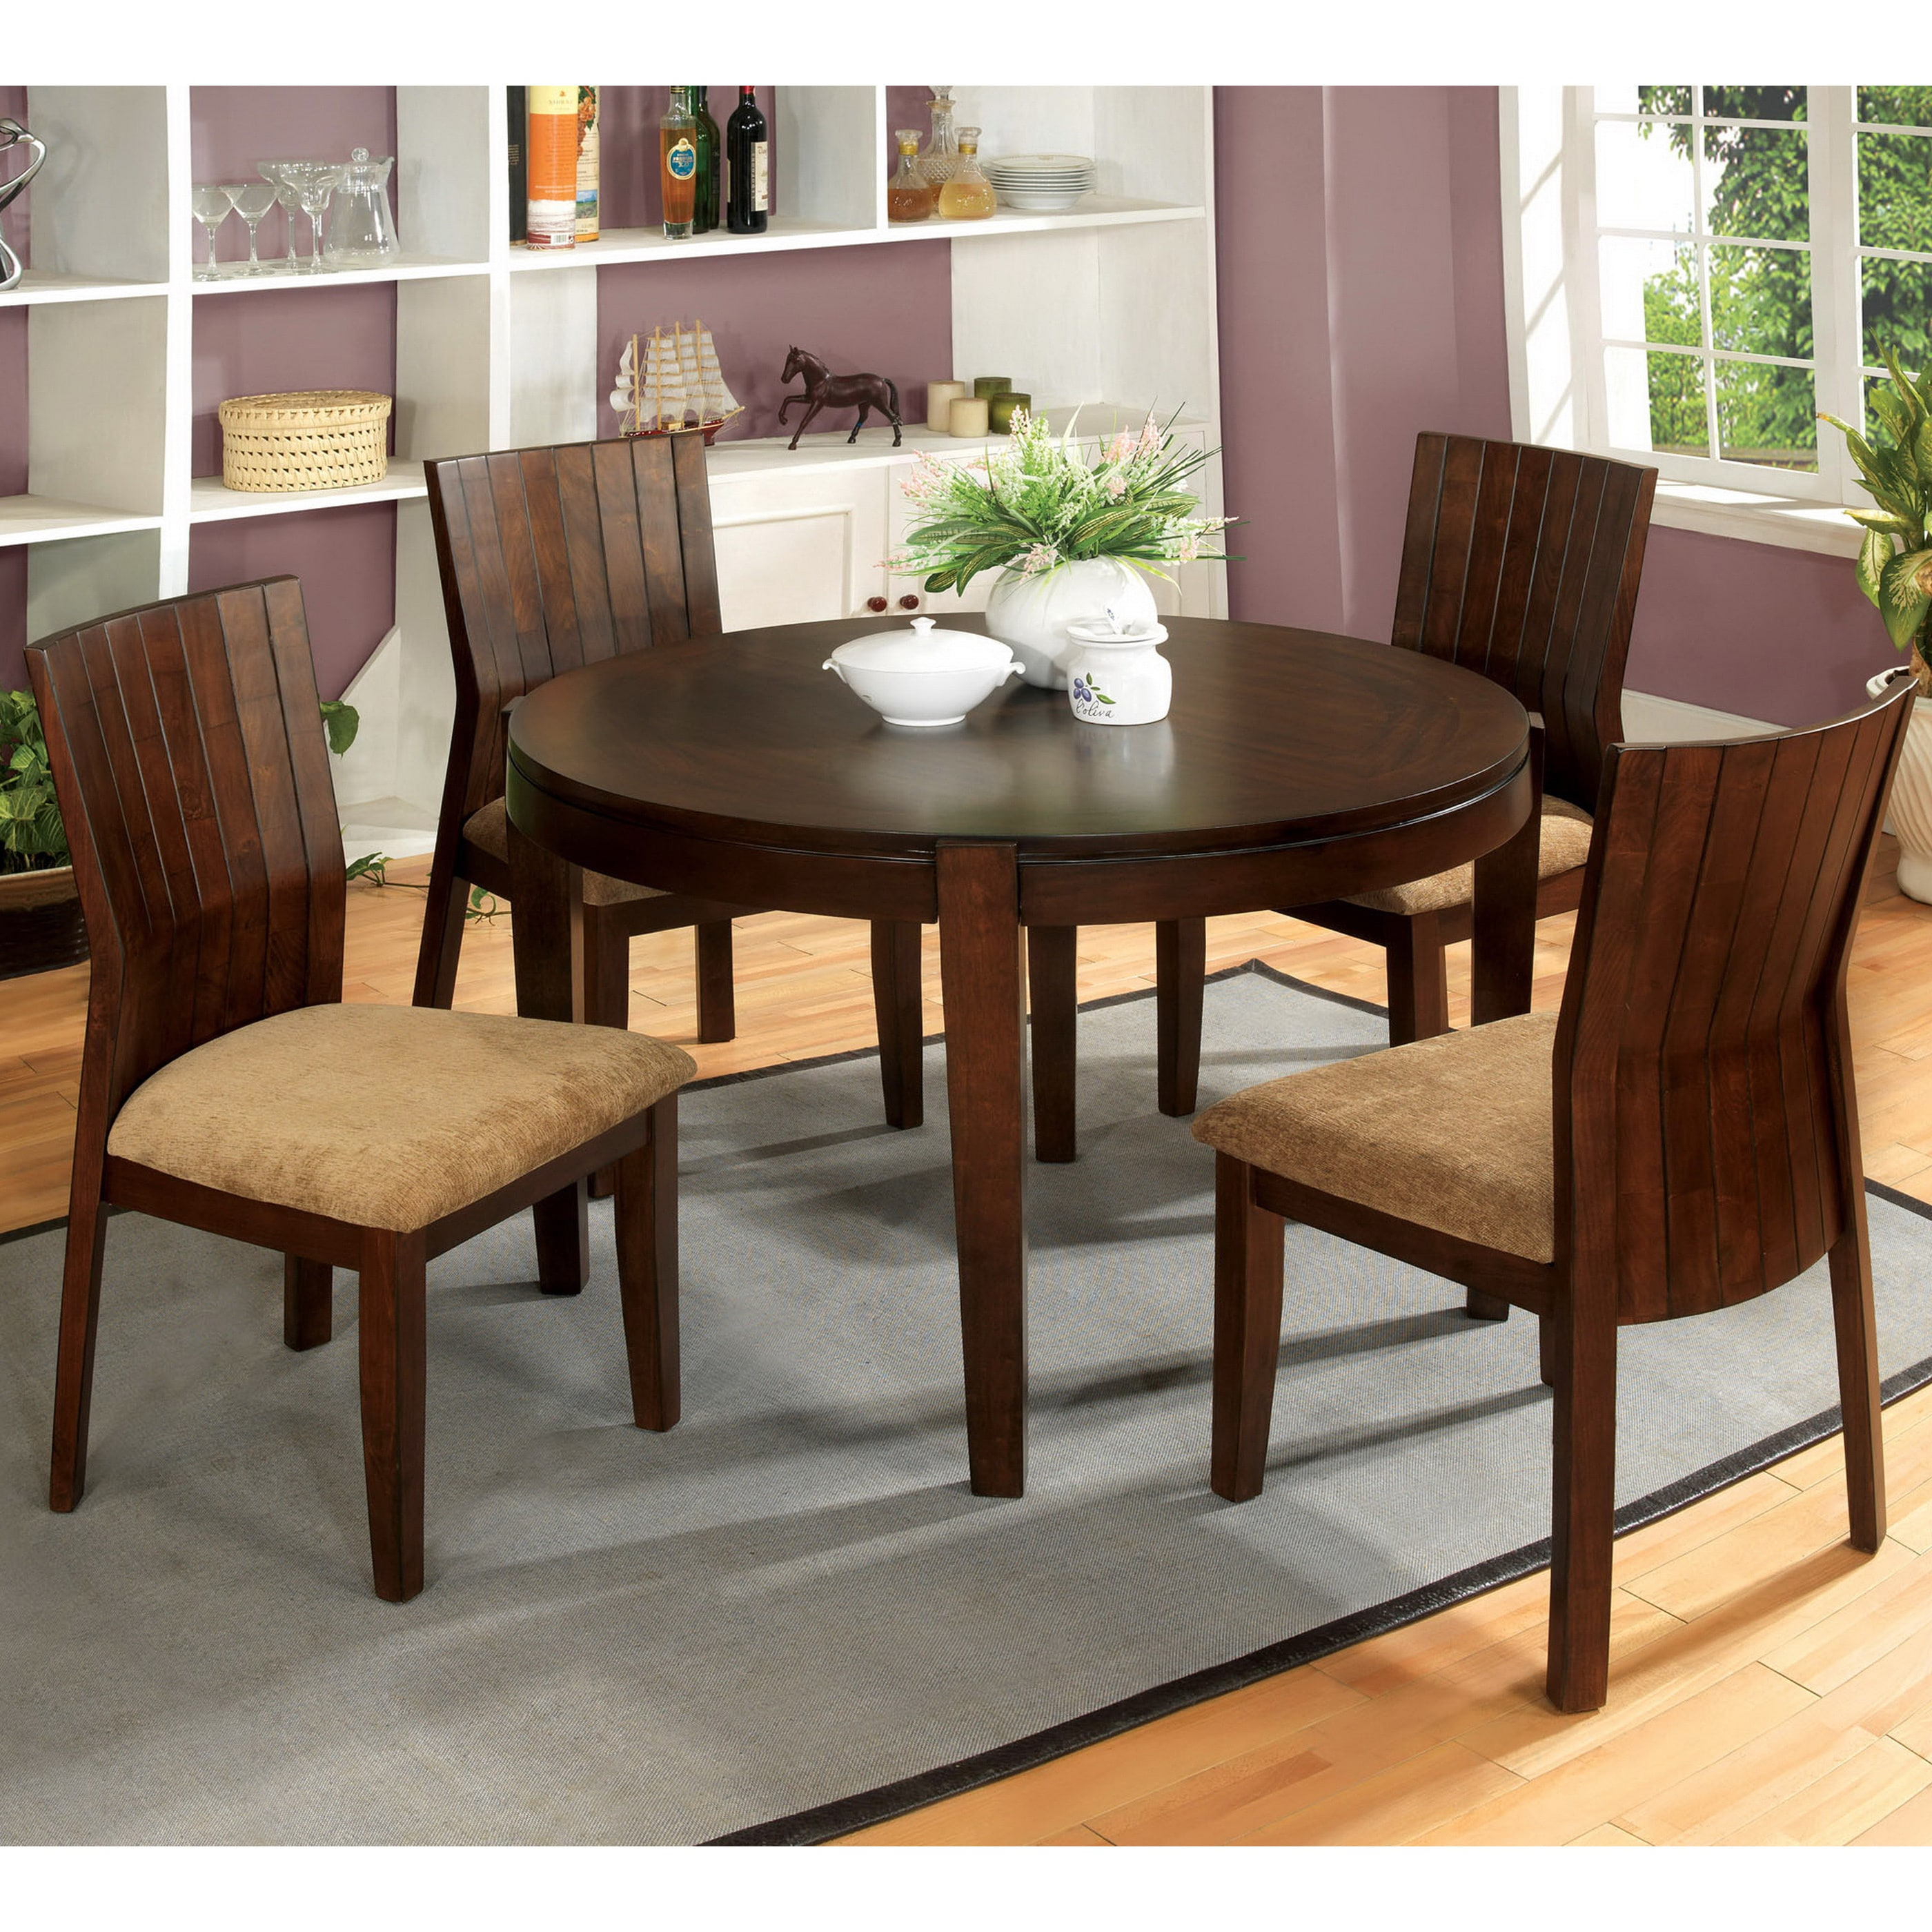 Overstock Dining Set: Furniture Of America Dustin Round 42-inch Walnut 5-piece